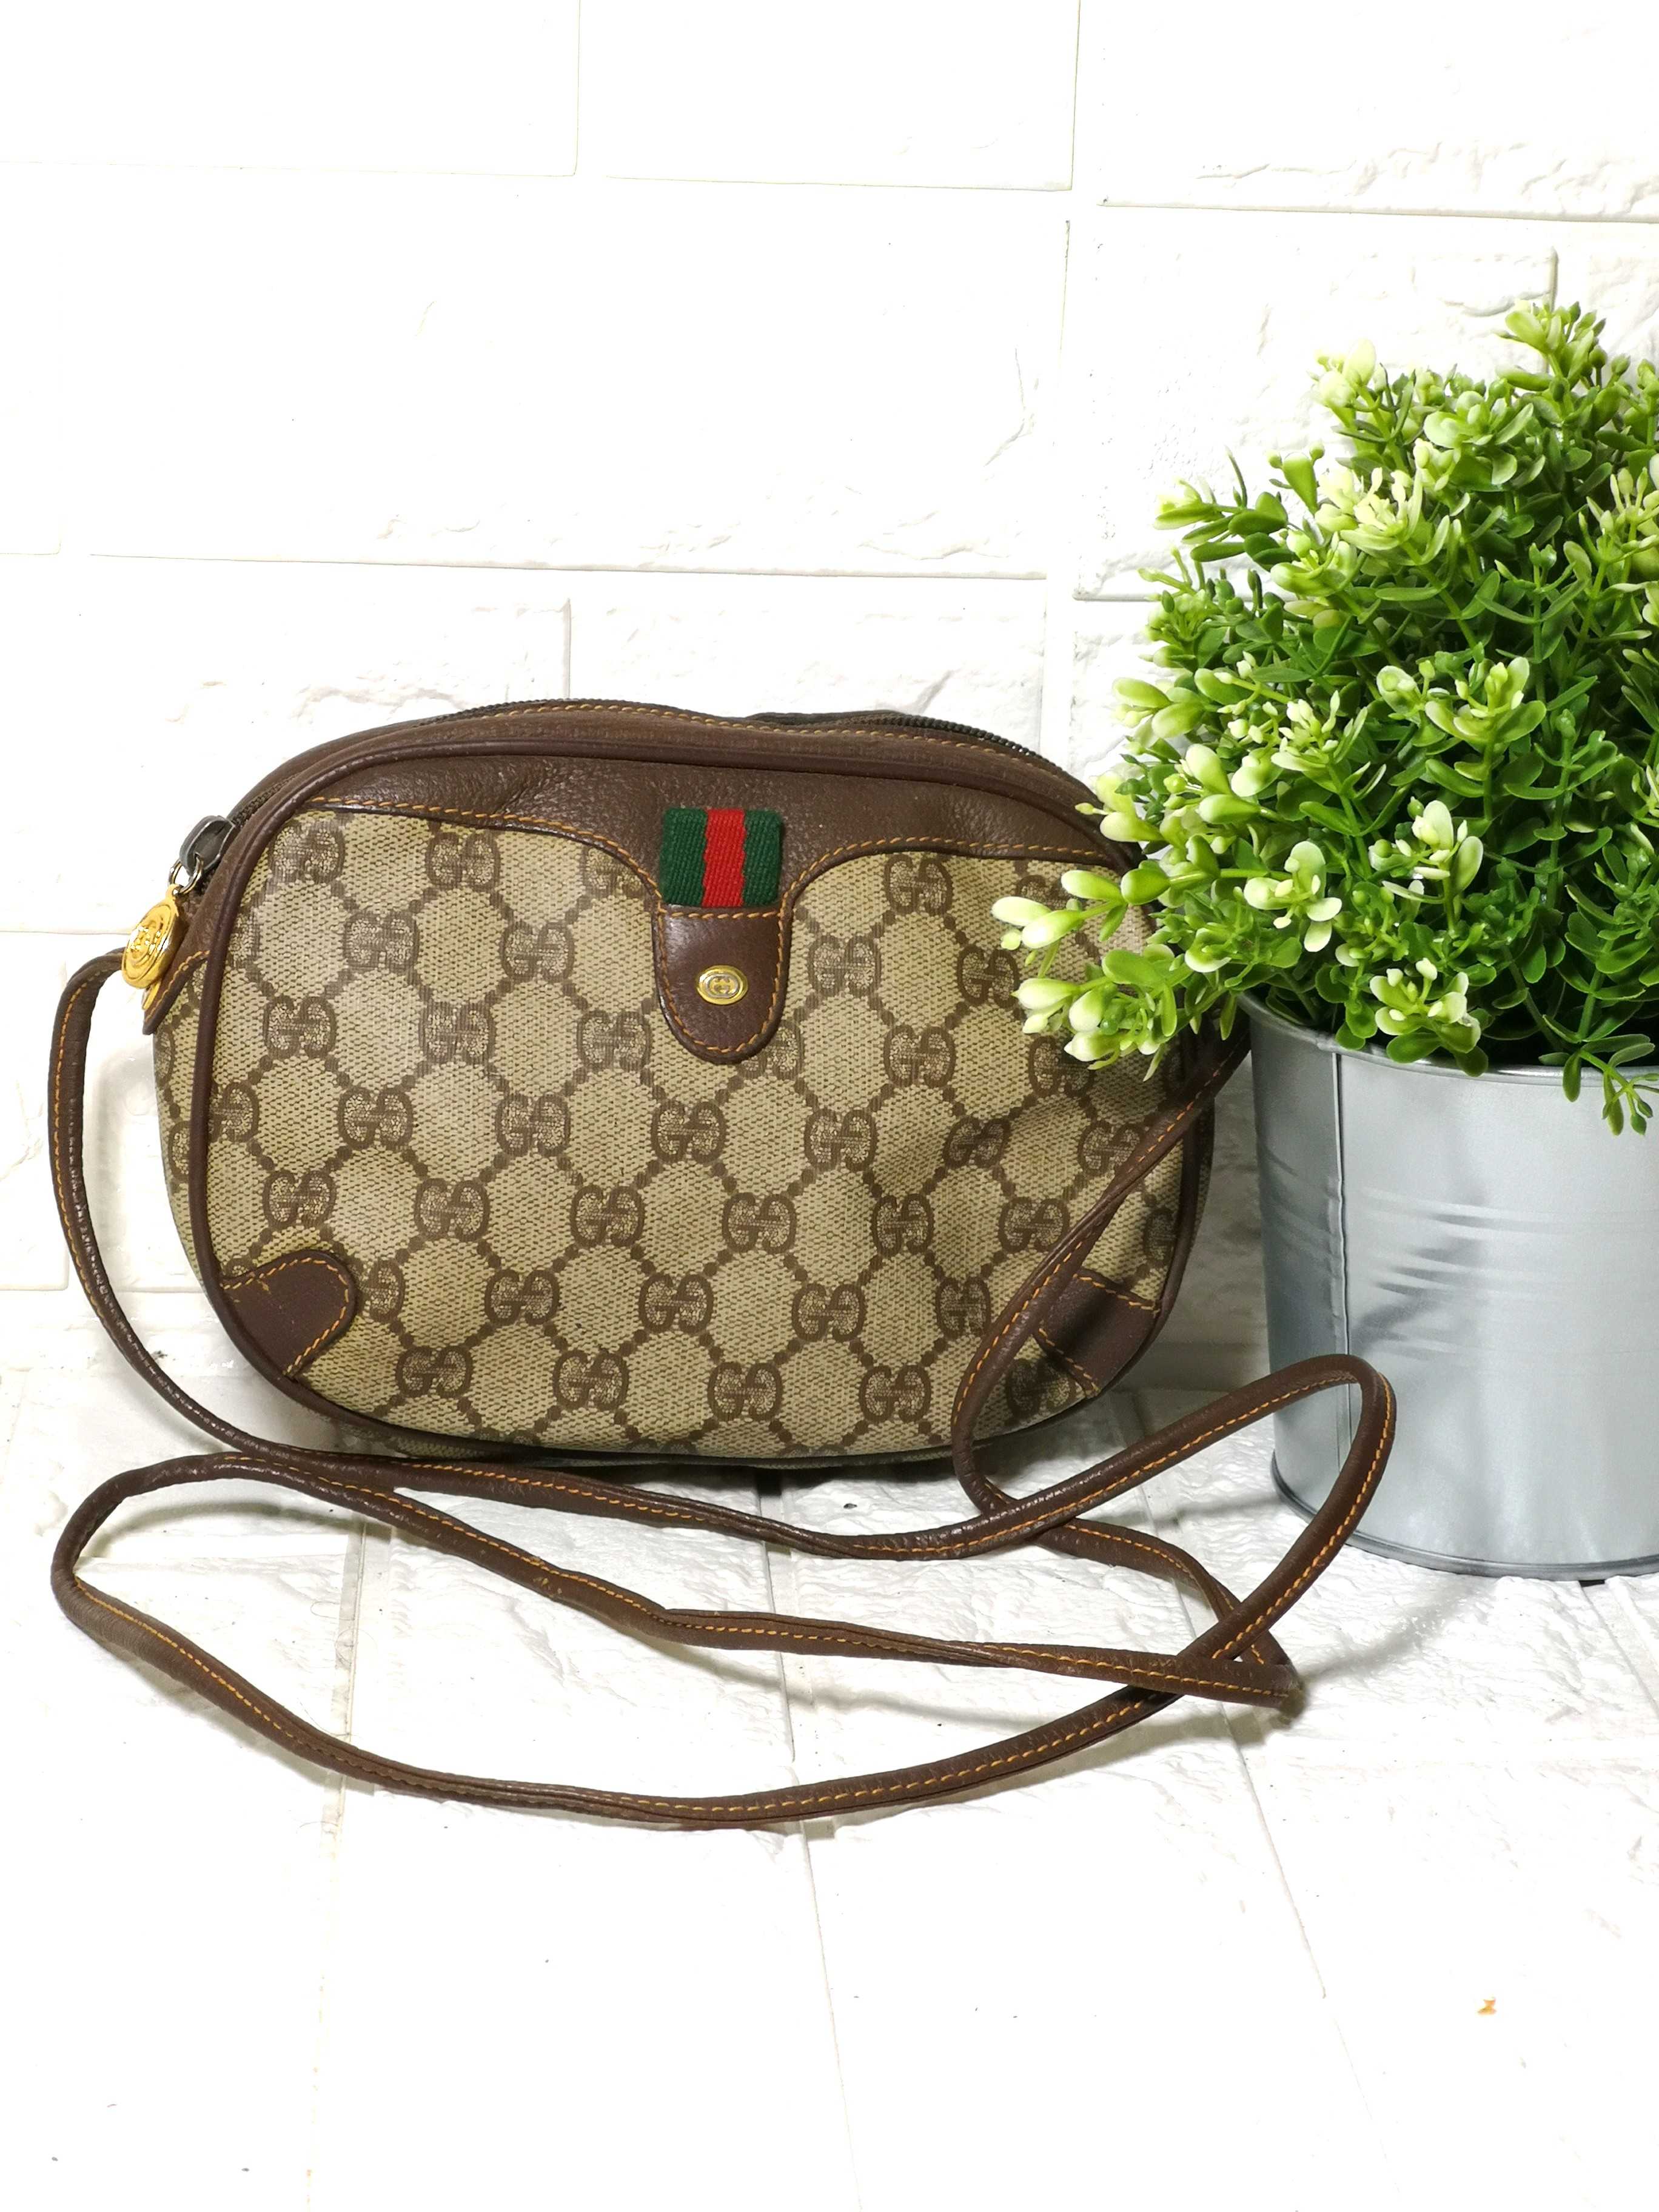 ff930c0b342f Vintage GUCCI, Women's Fashion, Bags & Wallets on Carousell